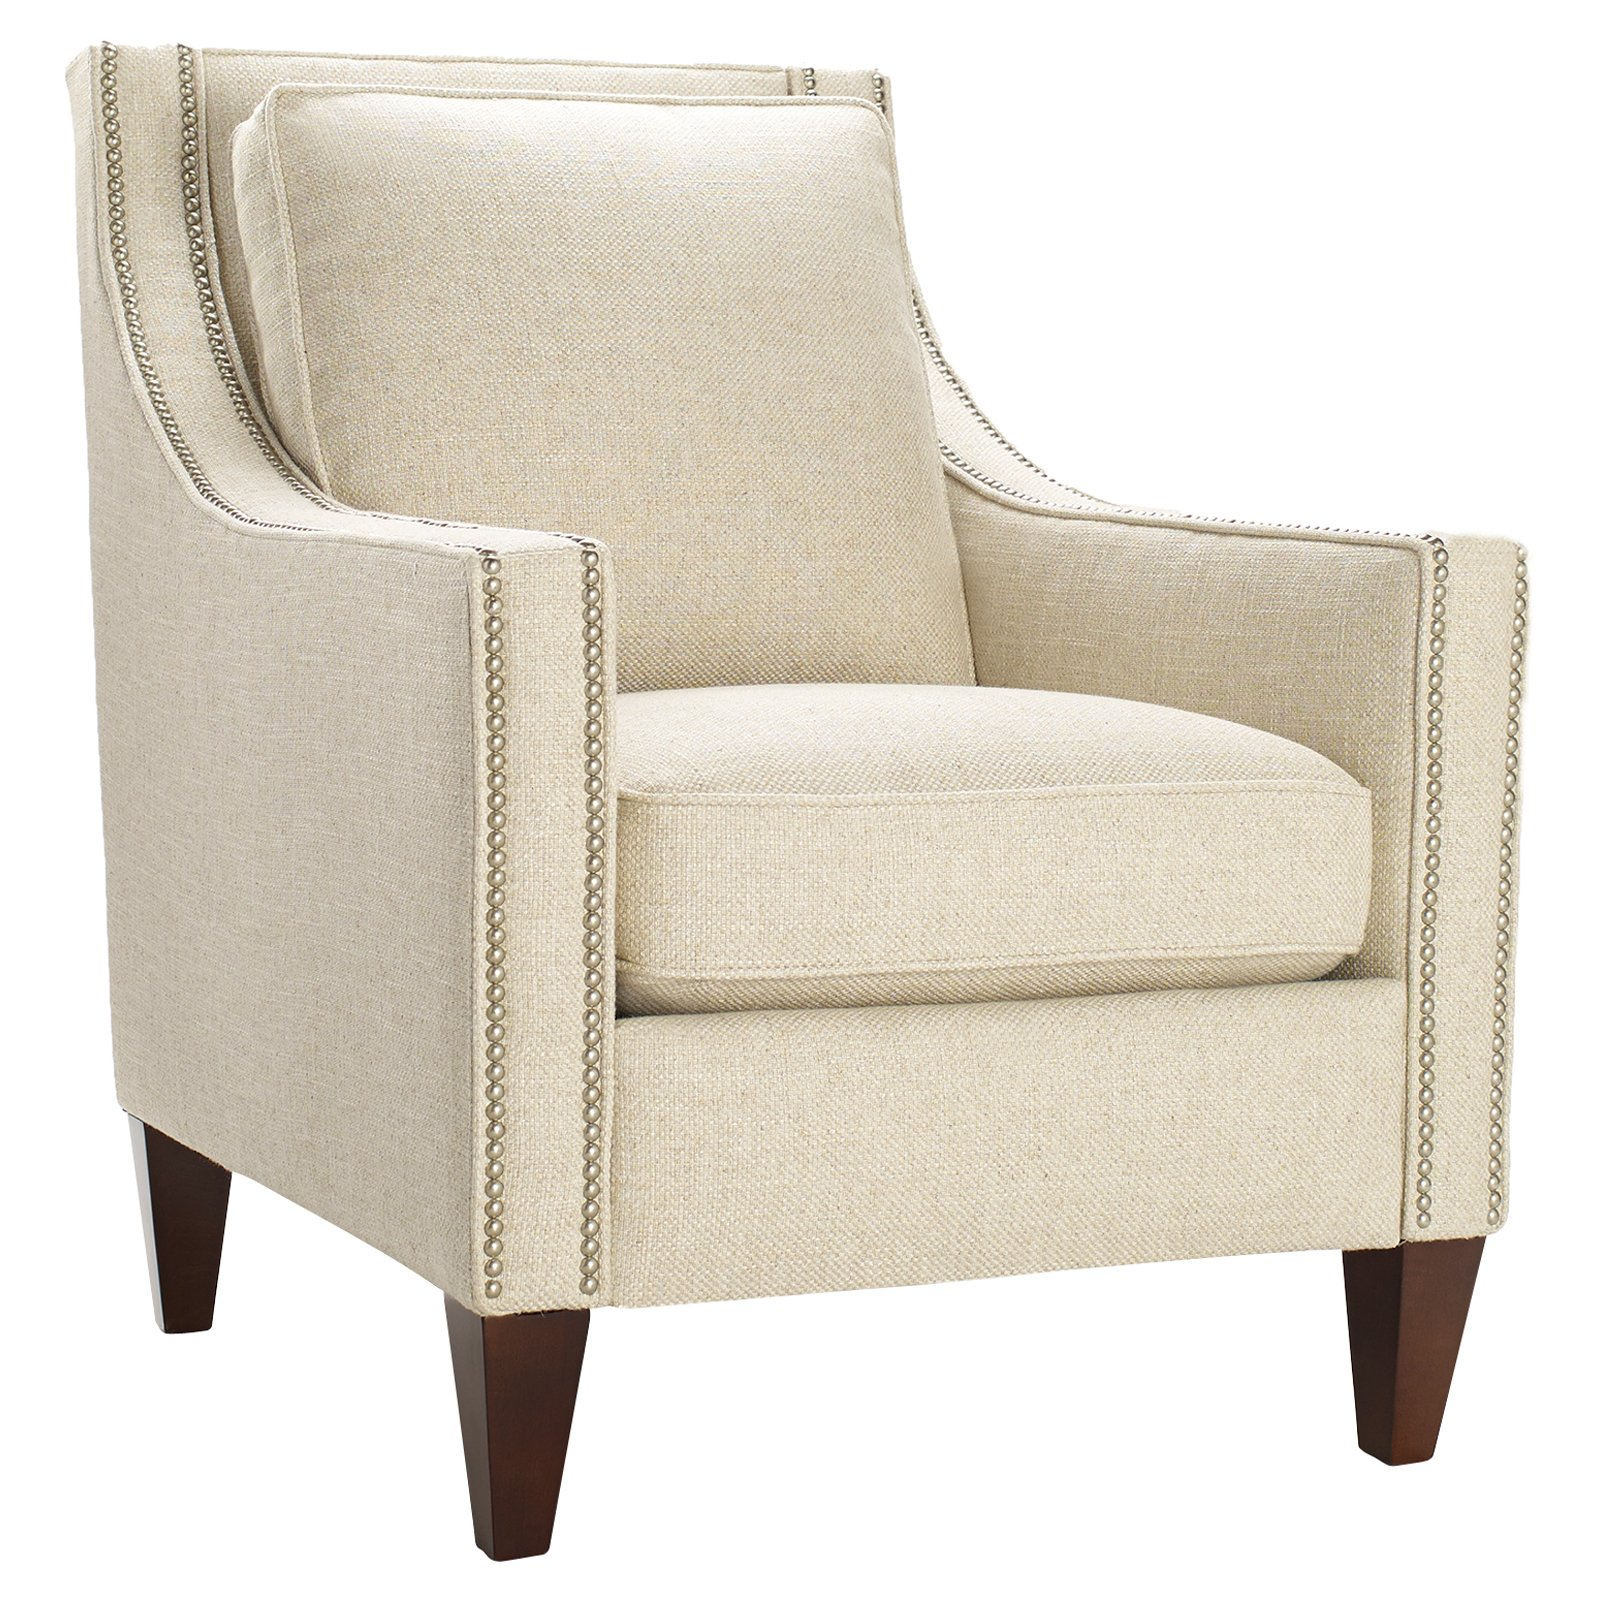 Remarkable Cool Accent Chairs Homesfeed Caraccident5 Cool Chair Designs And Ideas Caraccident5Info